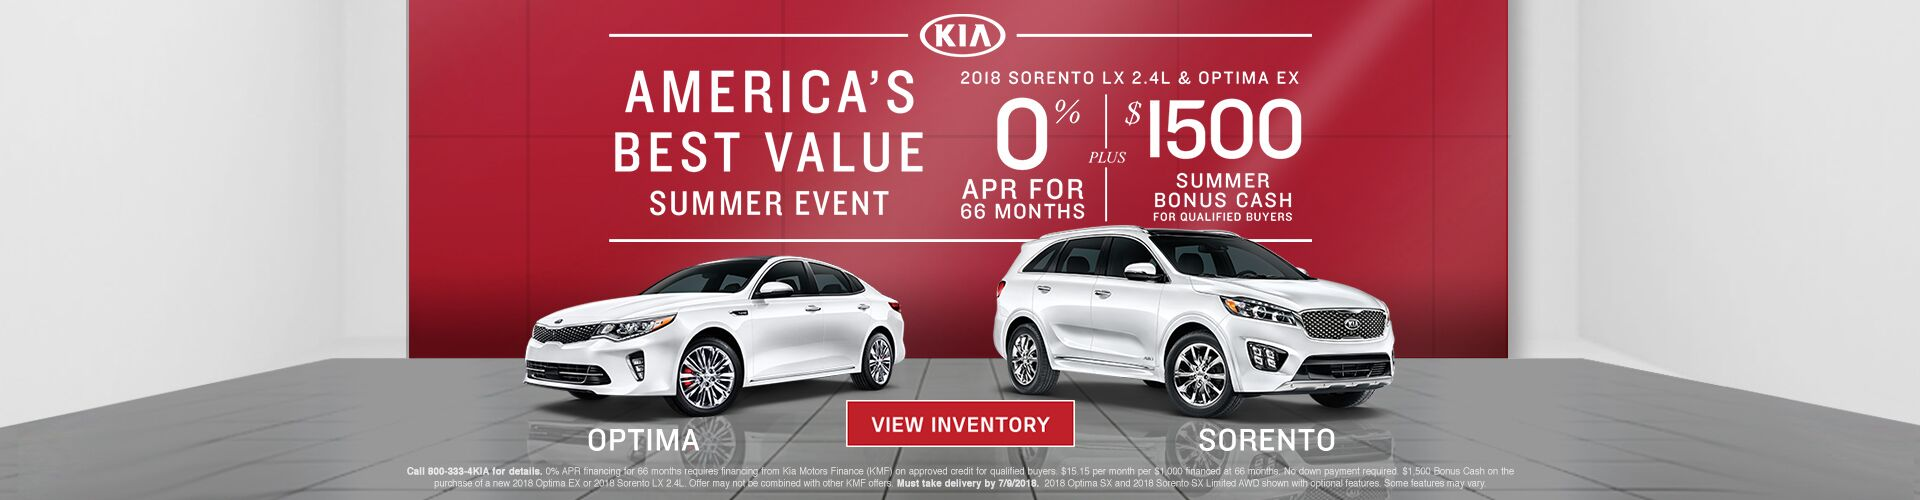 America's Best Value Summer Event at Serra Gardendale Kia